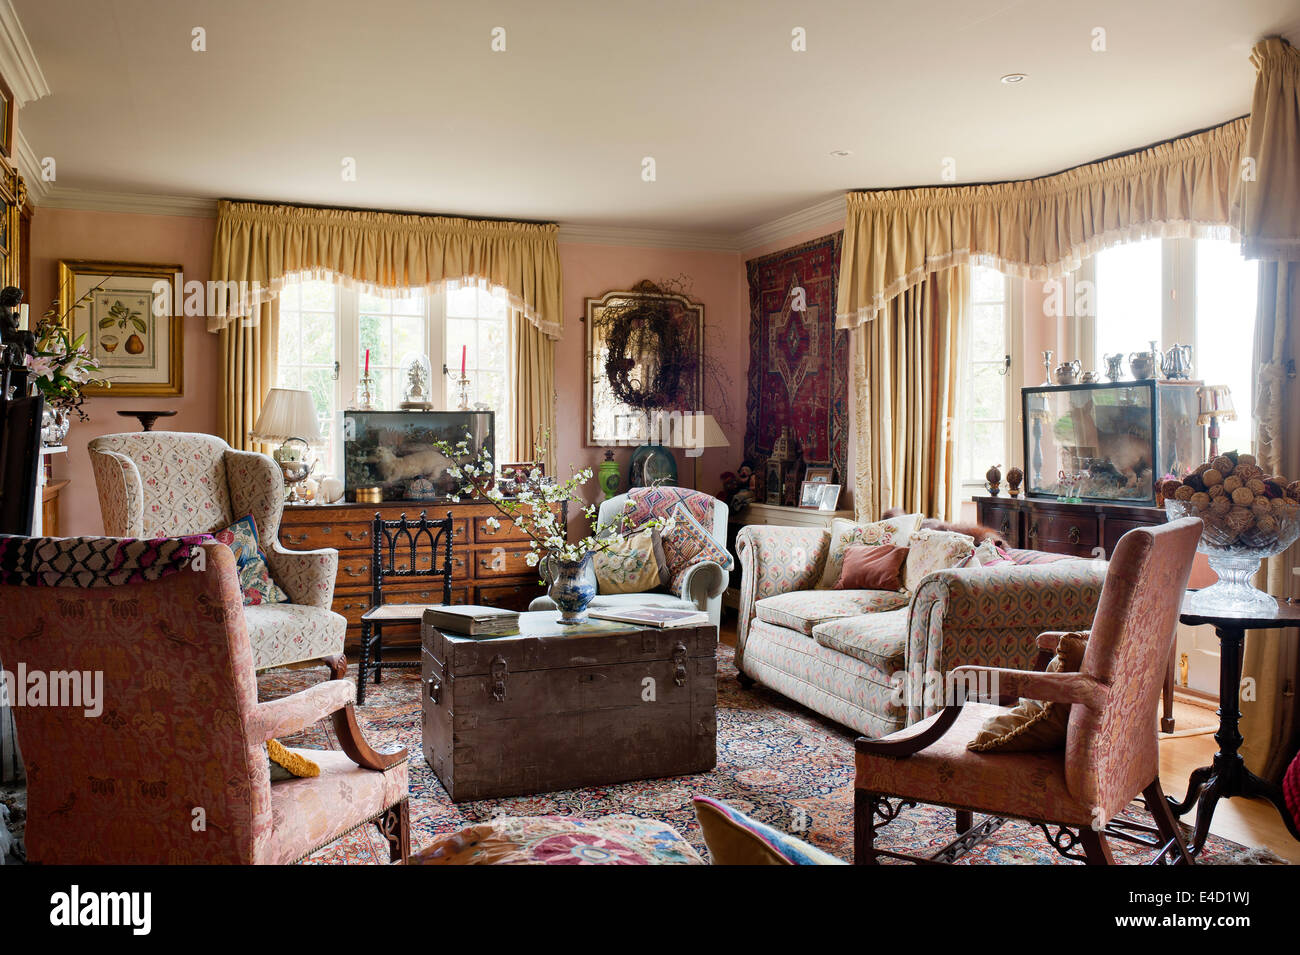 Living room floral upholstered sofa and wing back chairs in drawing room with old chests assorted textiles